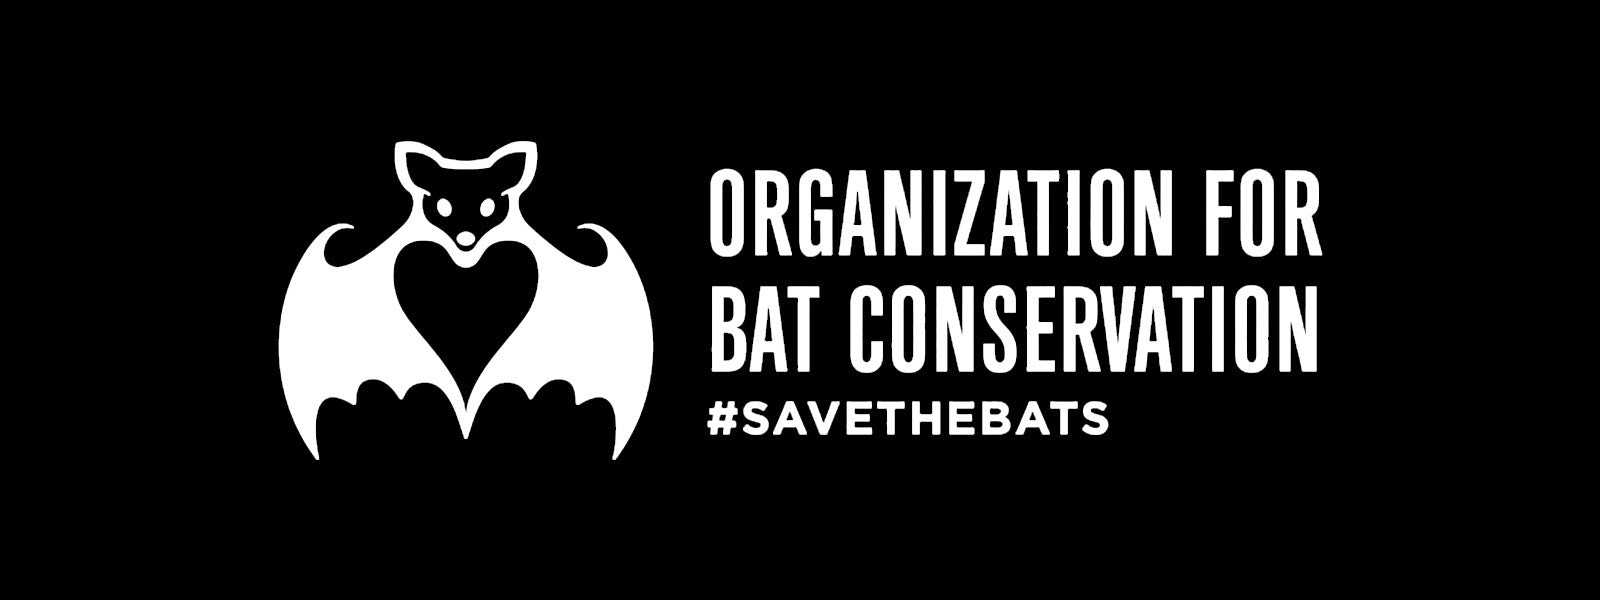 Save the Bats! 10% of proceeds donated...